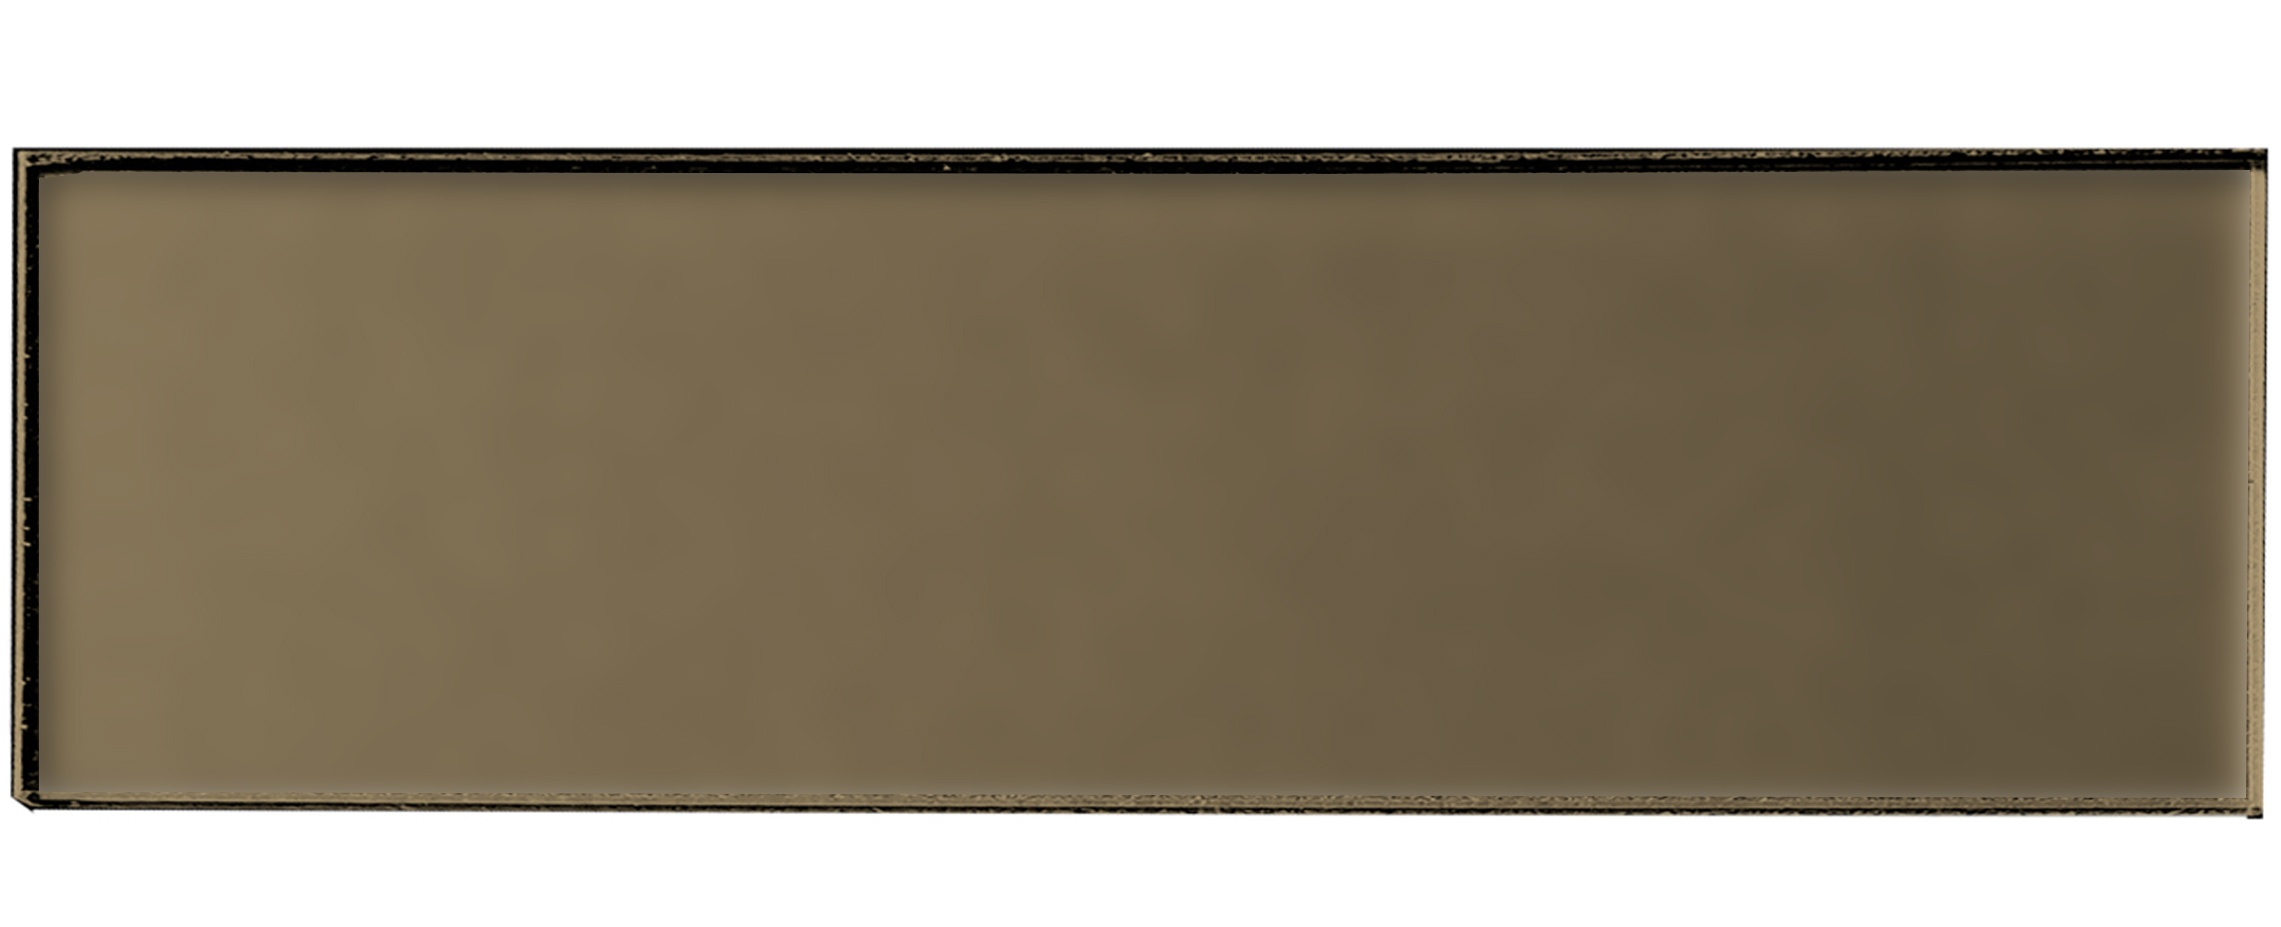 Forever 4 in x 16 in Glass Subway Tile in ETERNAL BRONZE Matte